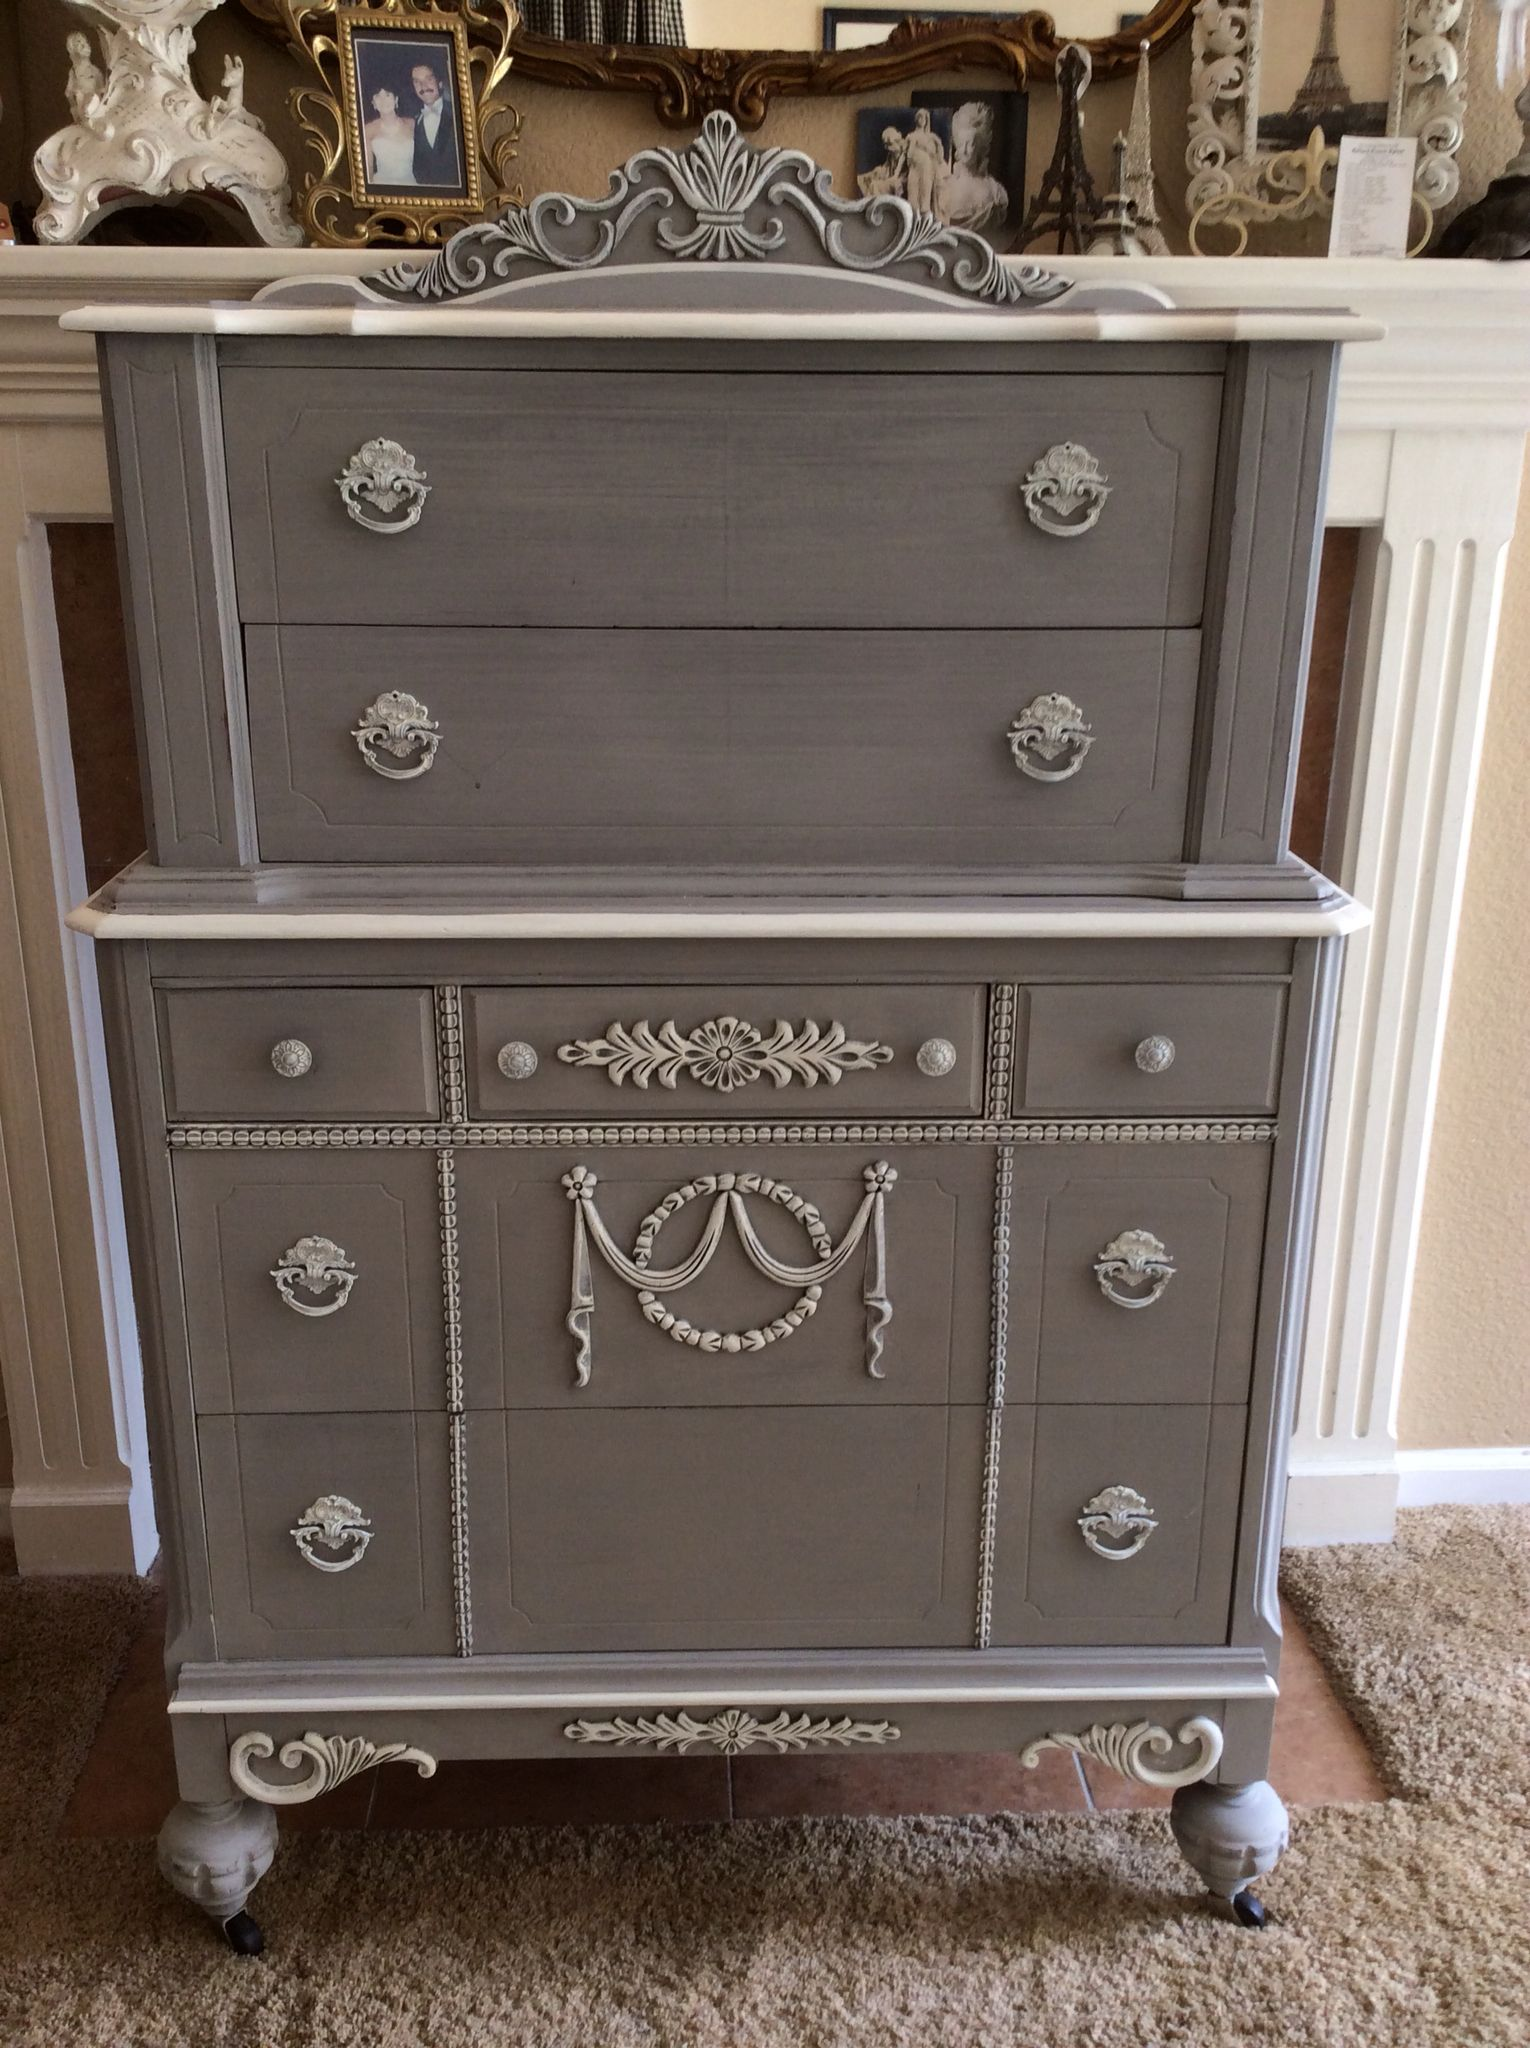 Finished Chest Painted With Pittsburg Grey And Vintage White Trim Gray Painted Furniture Painted Furniture For Sale Furniture Fix [ 2048 x 1530 Pixel ]